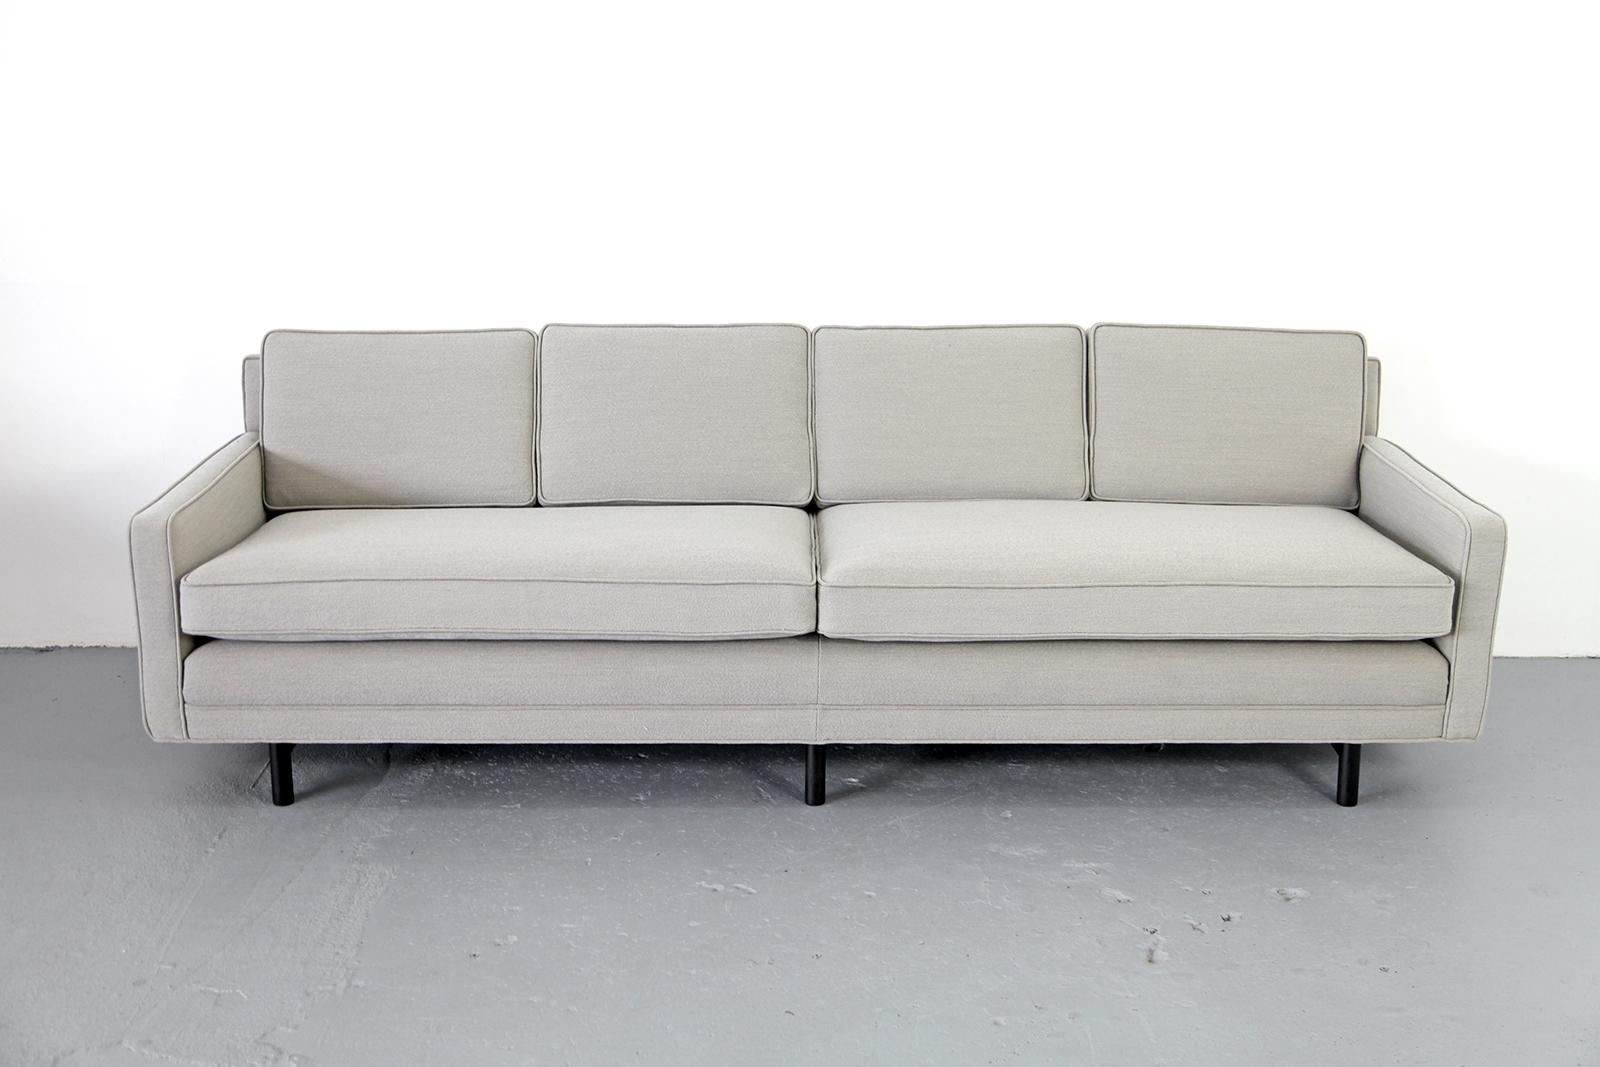 4-Seater Sofapaul Mccobb For Directional For Sale At Pamono within Large 4 Seater Sofas